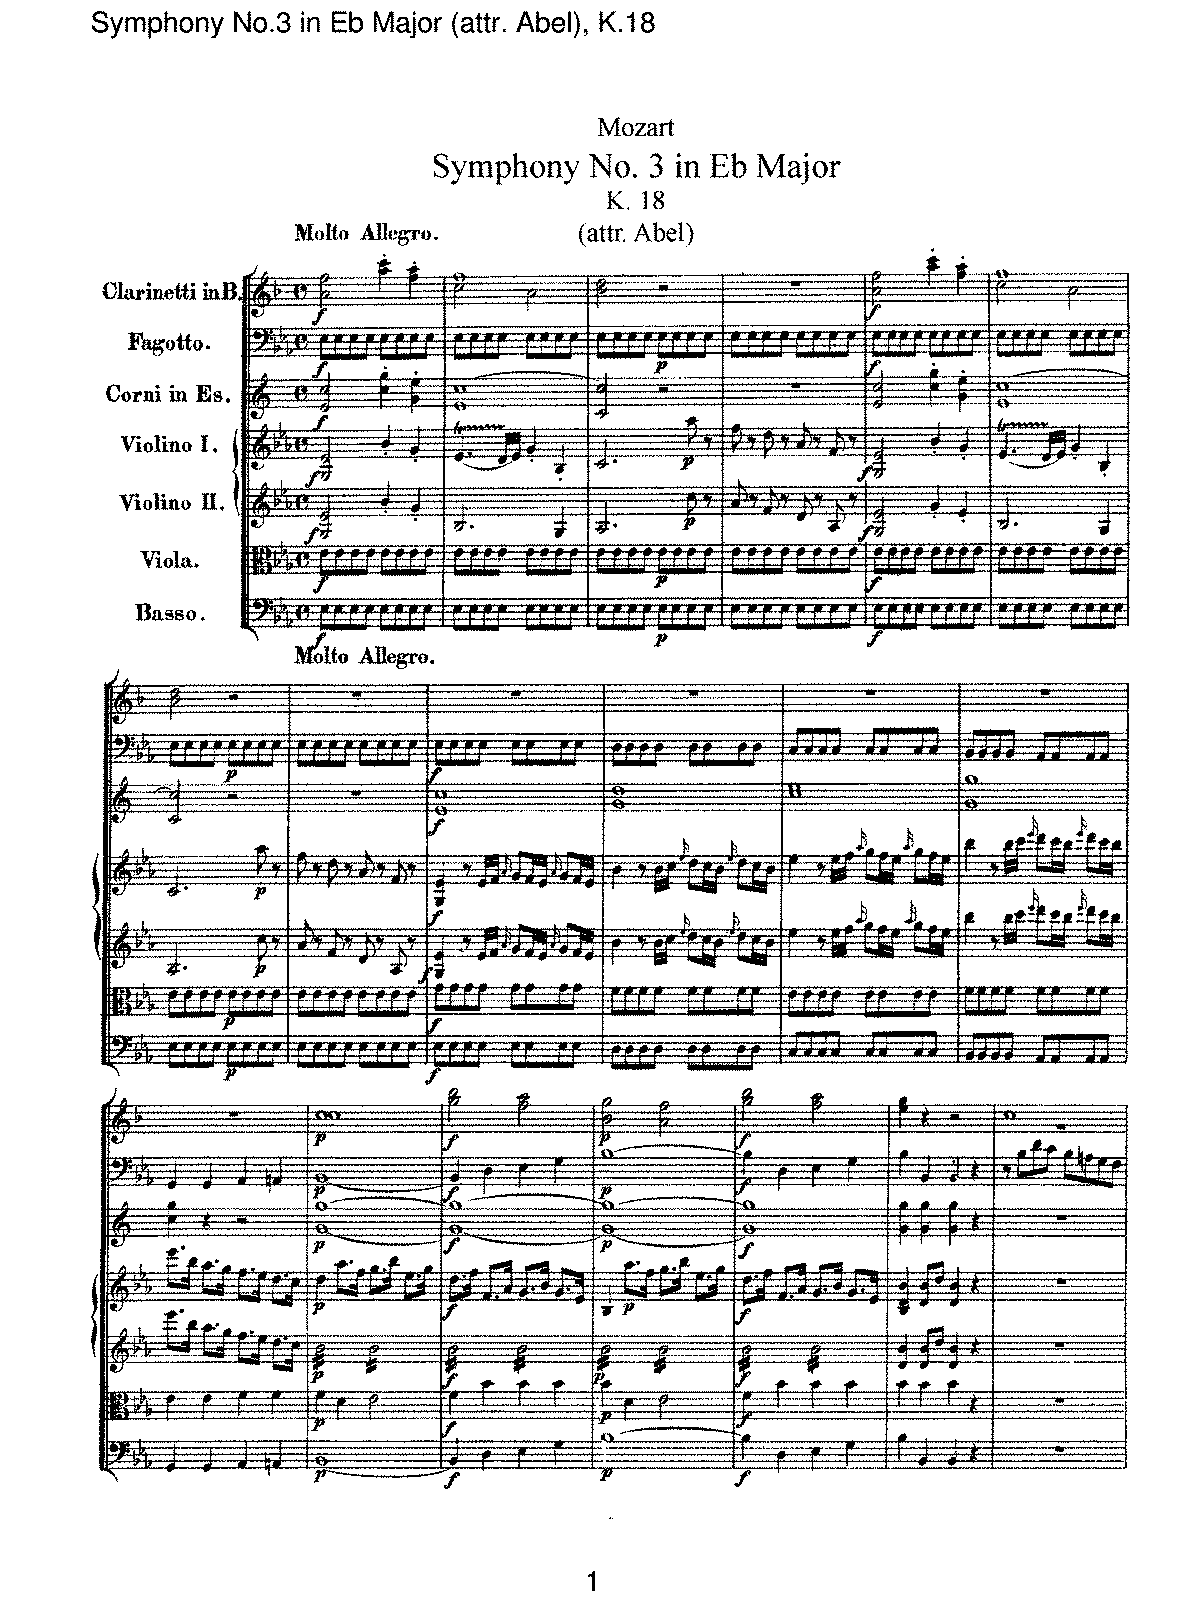 Mozart - Symphony No 03 in Eb Major (attr Abel), K18.pdf